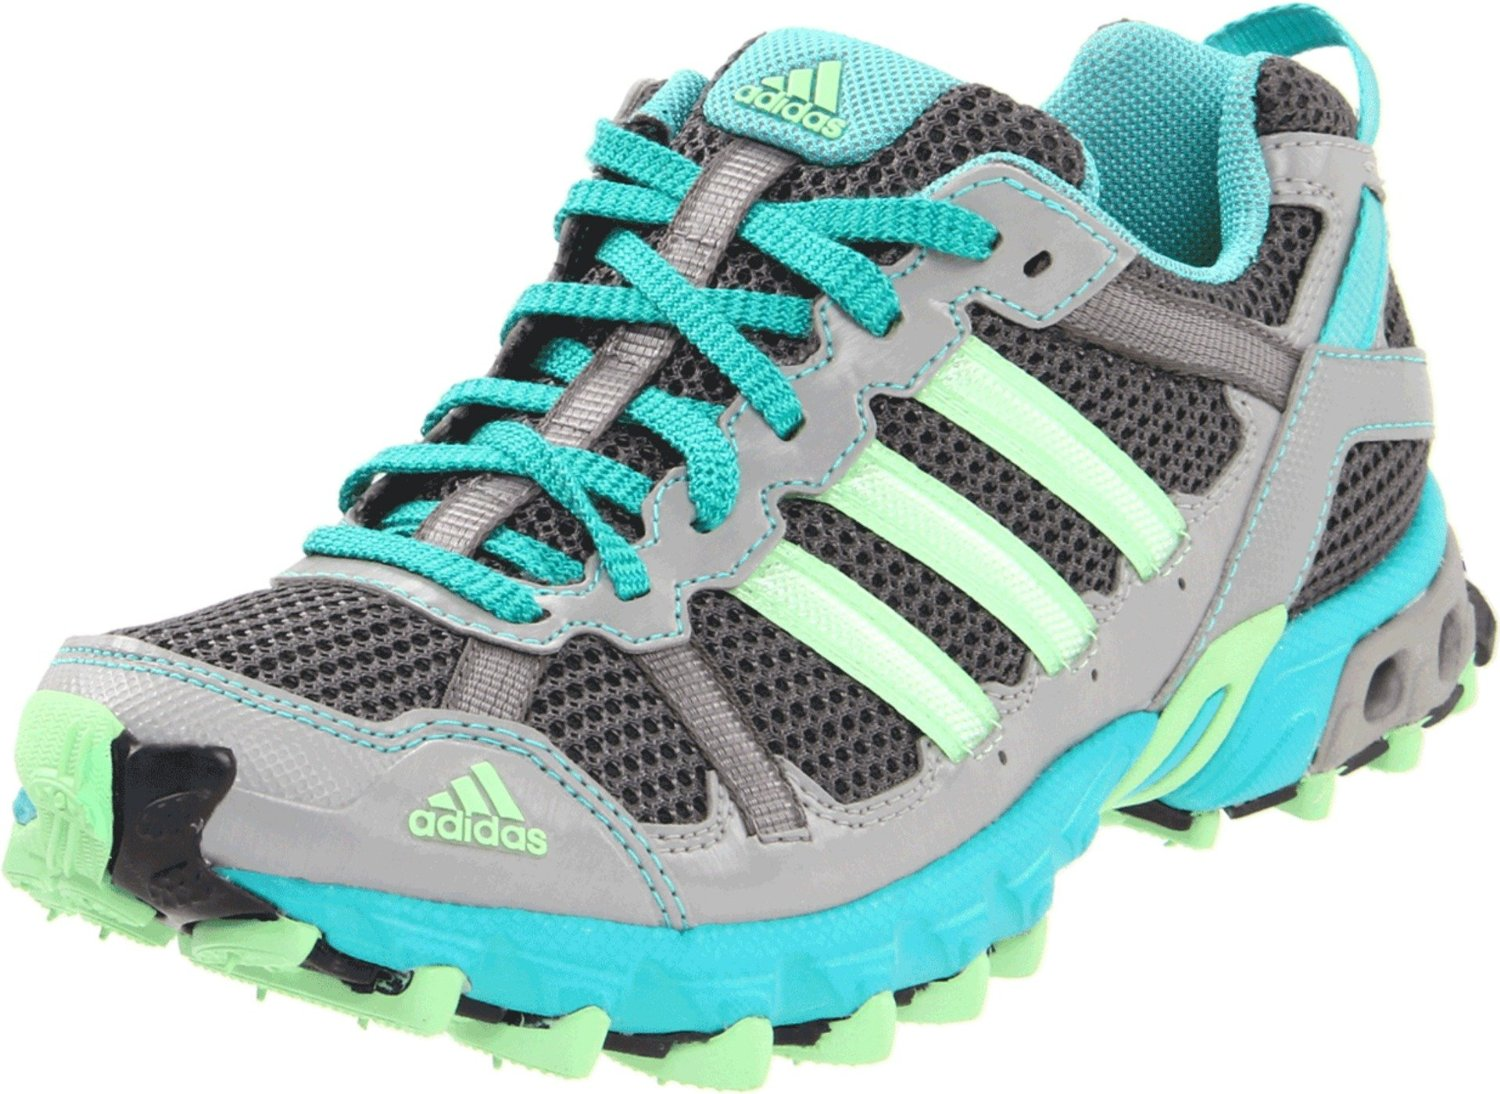 Women Shoes Space Centre: Adidas Women's Thrasher TR Trail